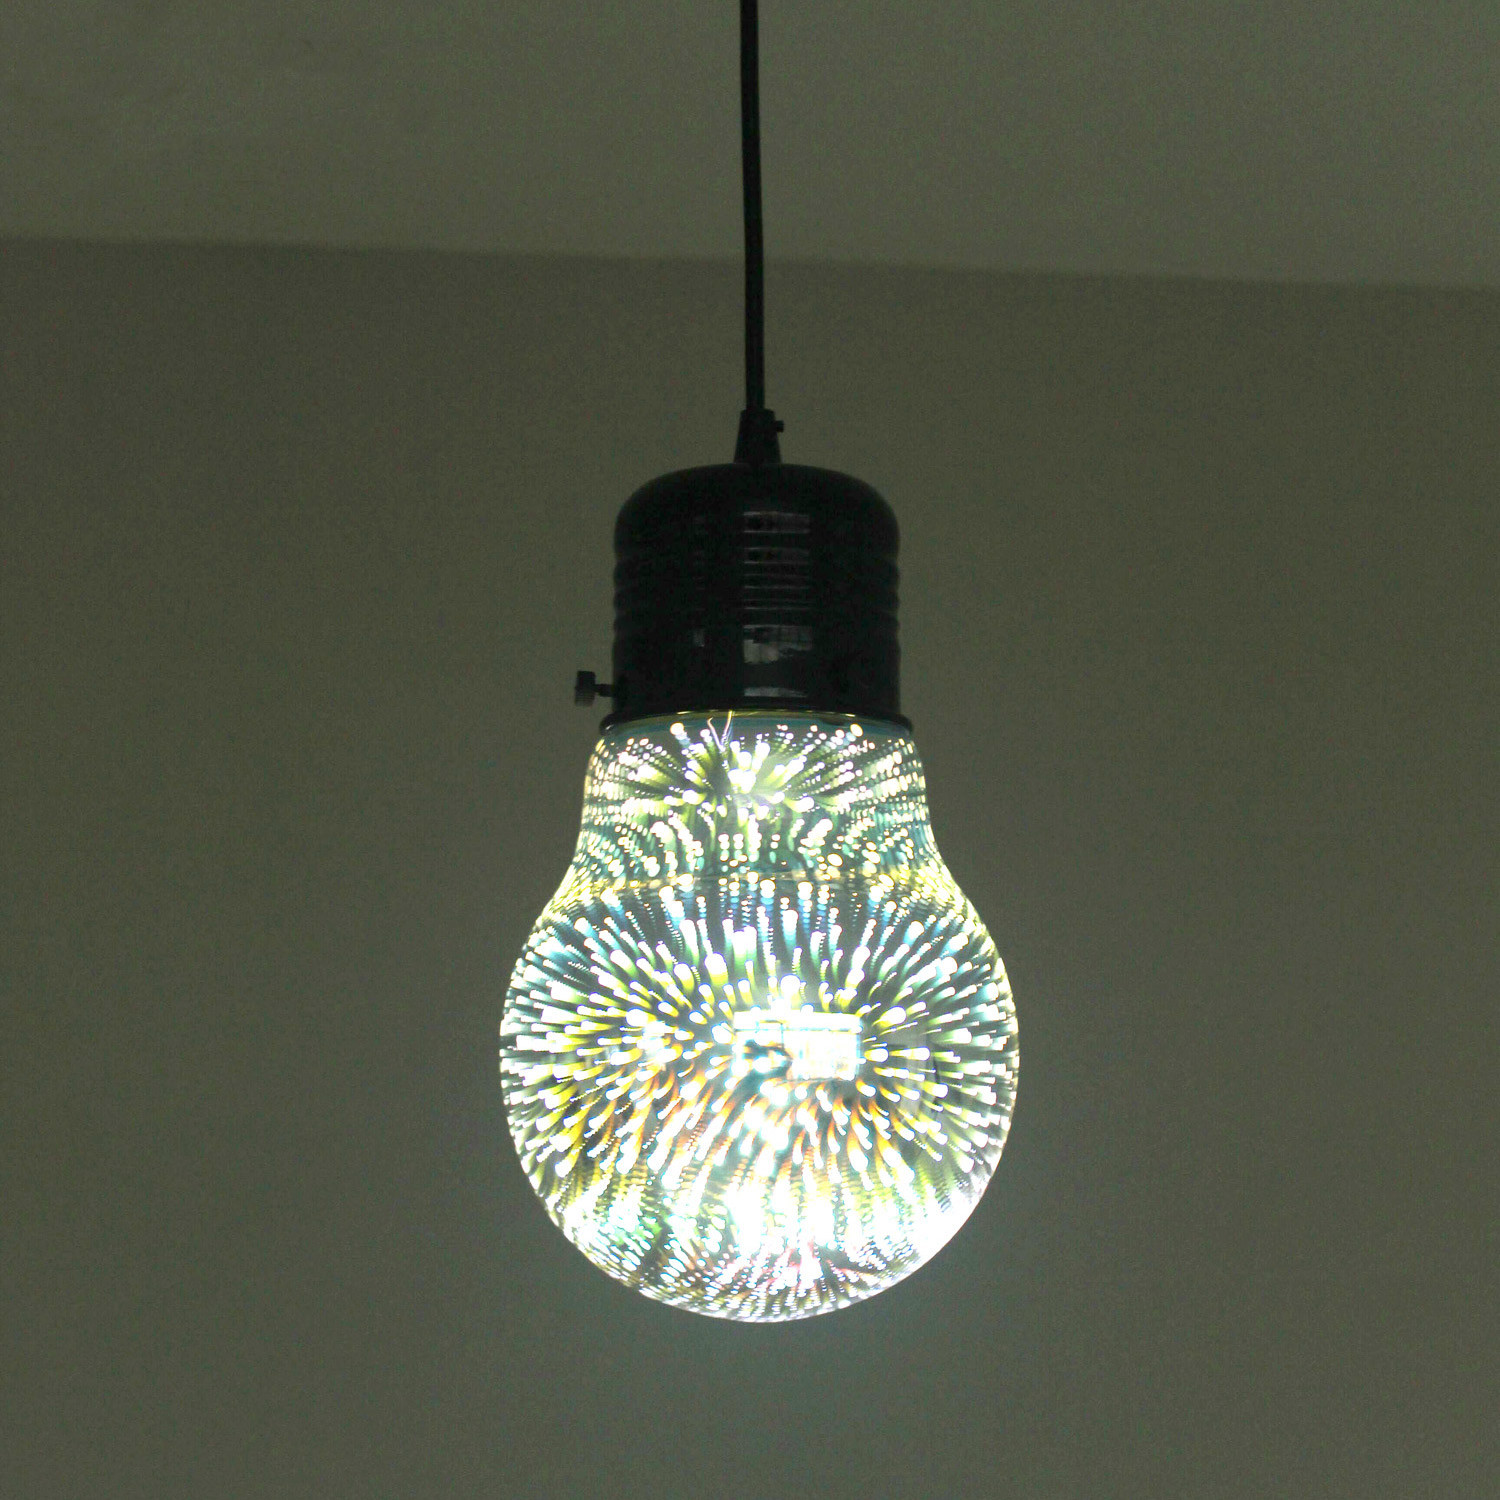 Bulb Ceiling Light Innostyles Touch Of Modern